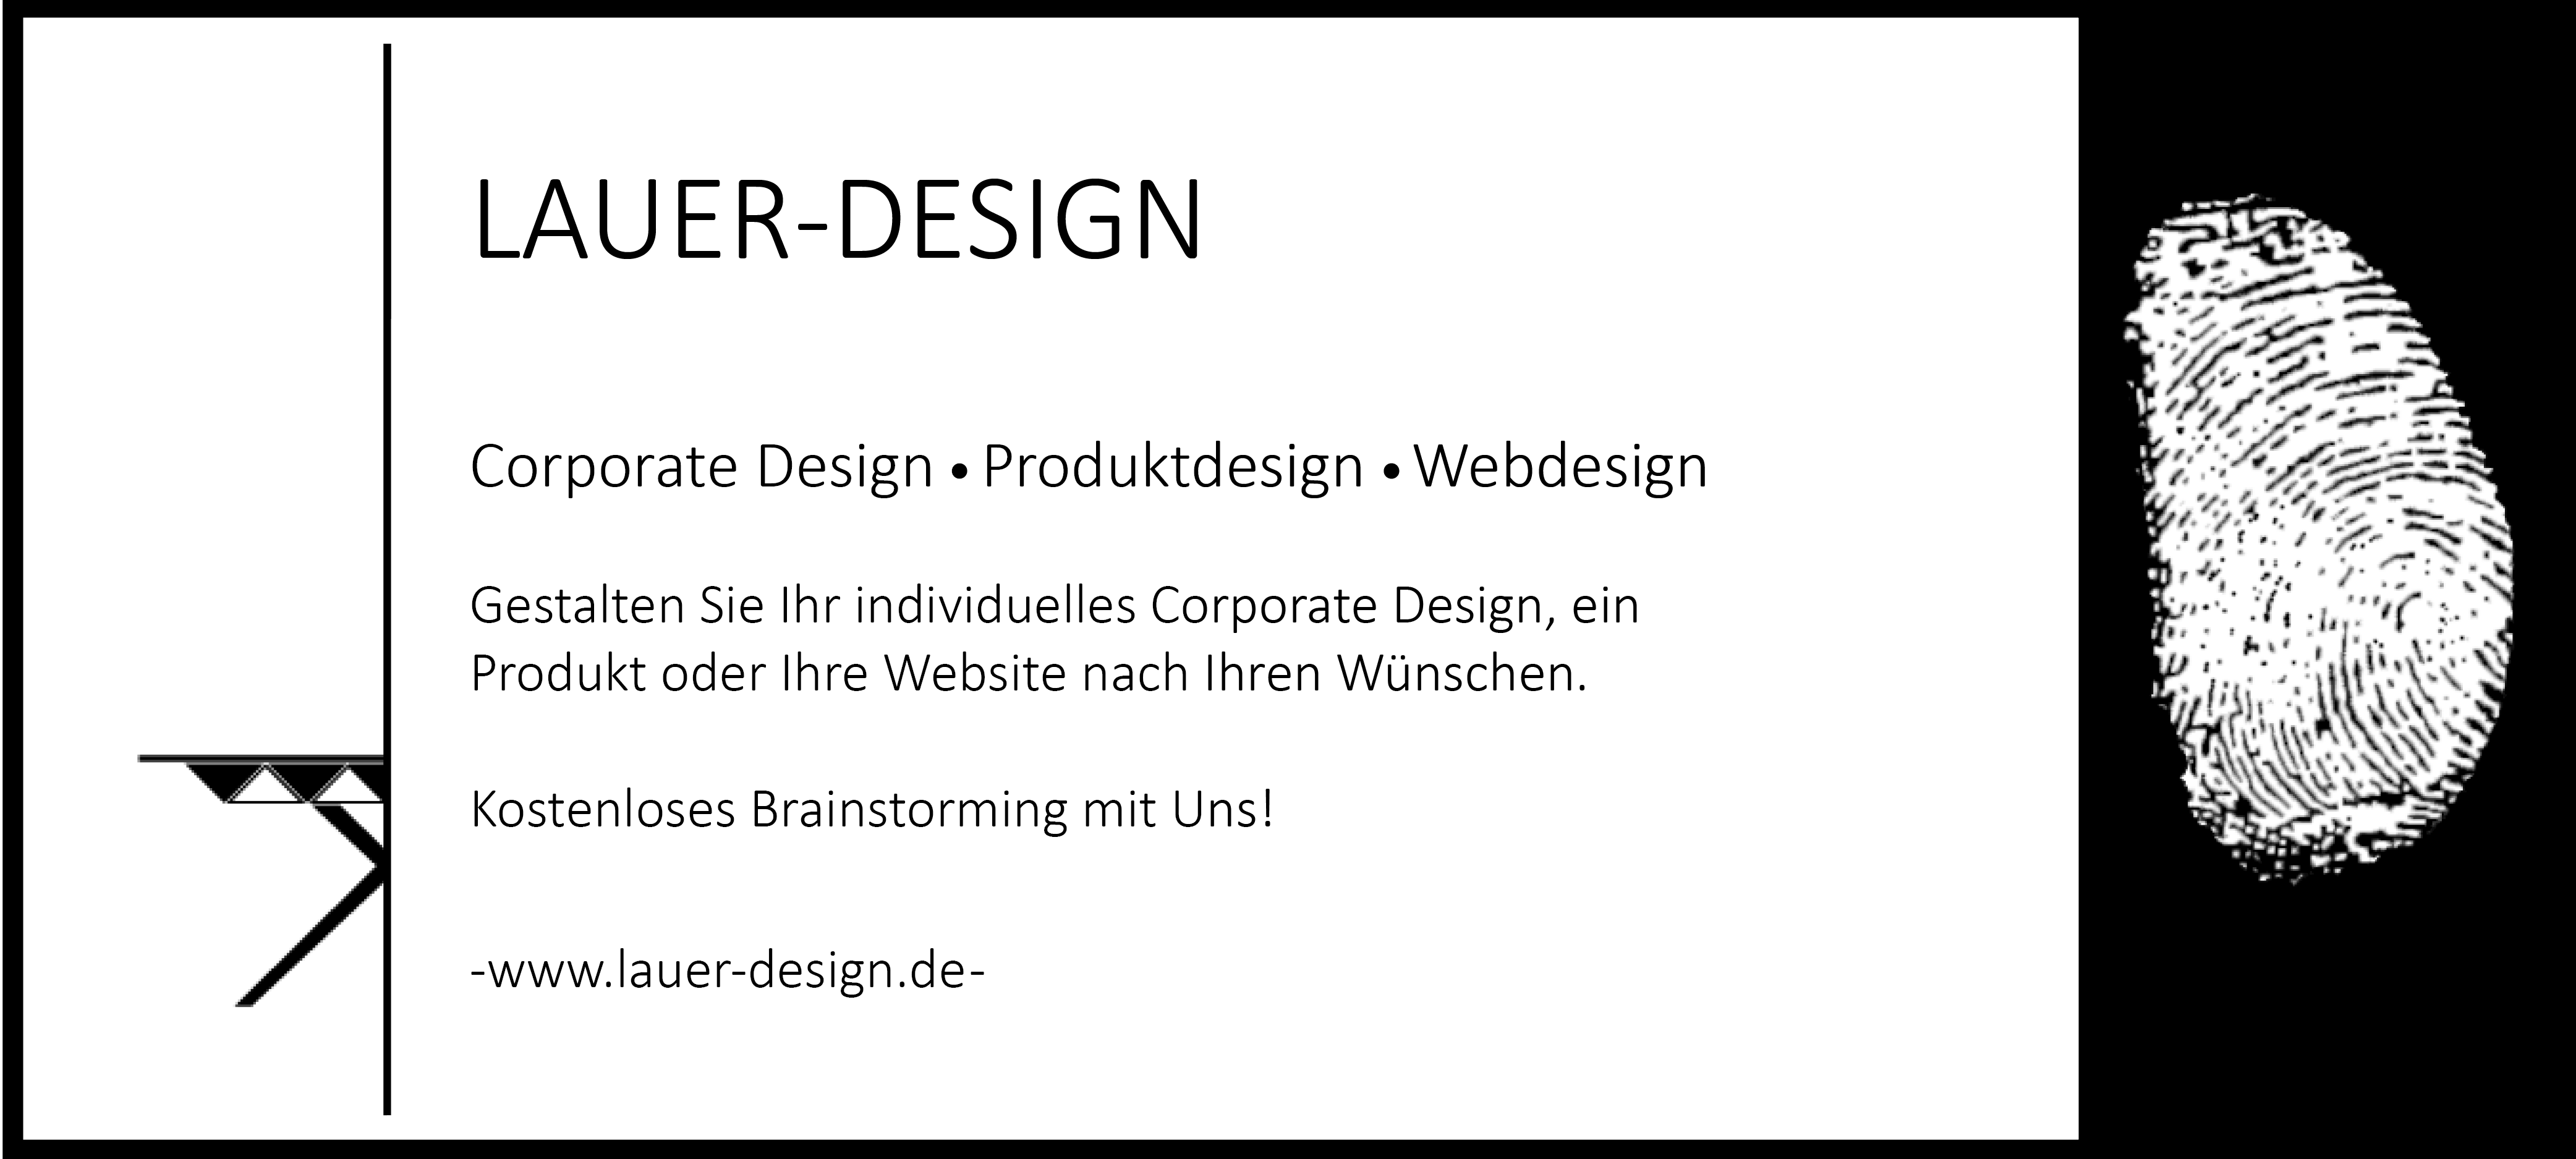 Lauer-Design-angebot